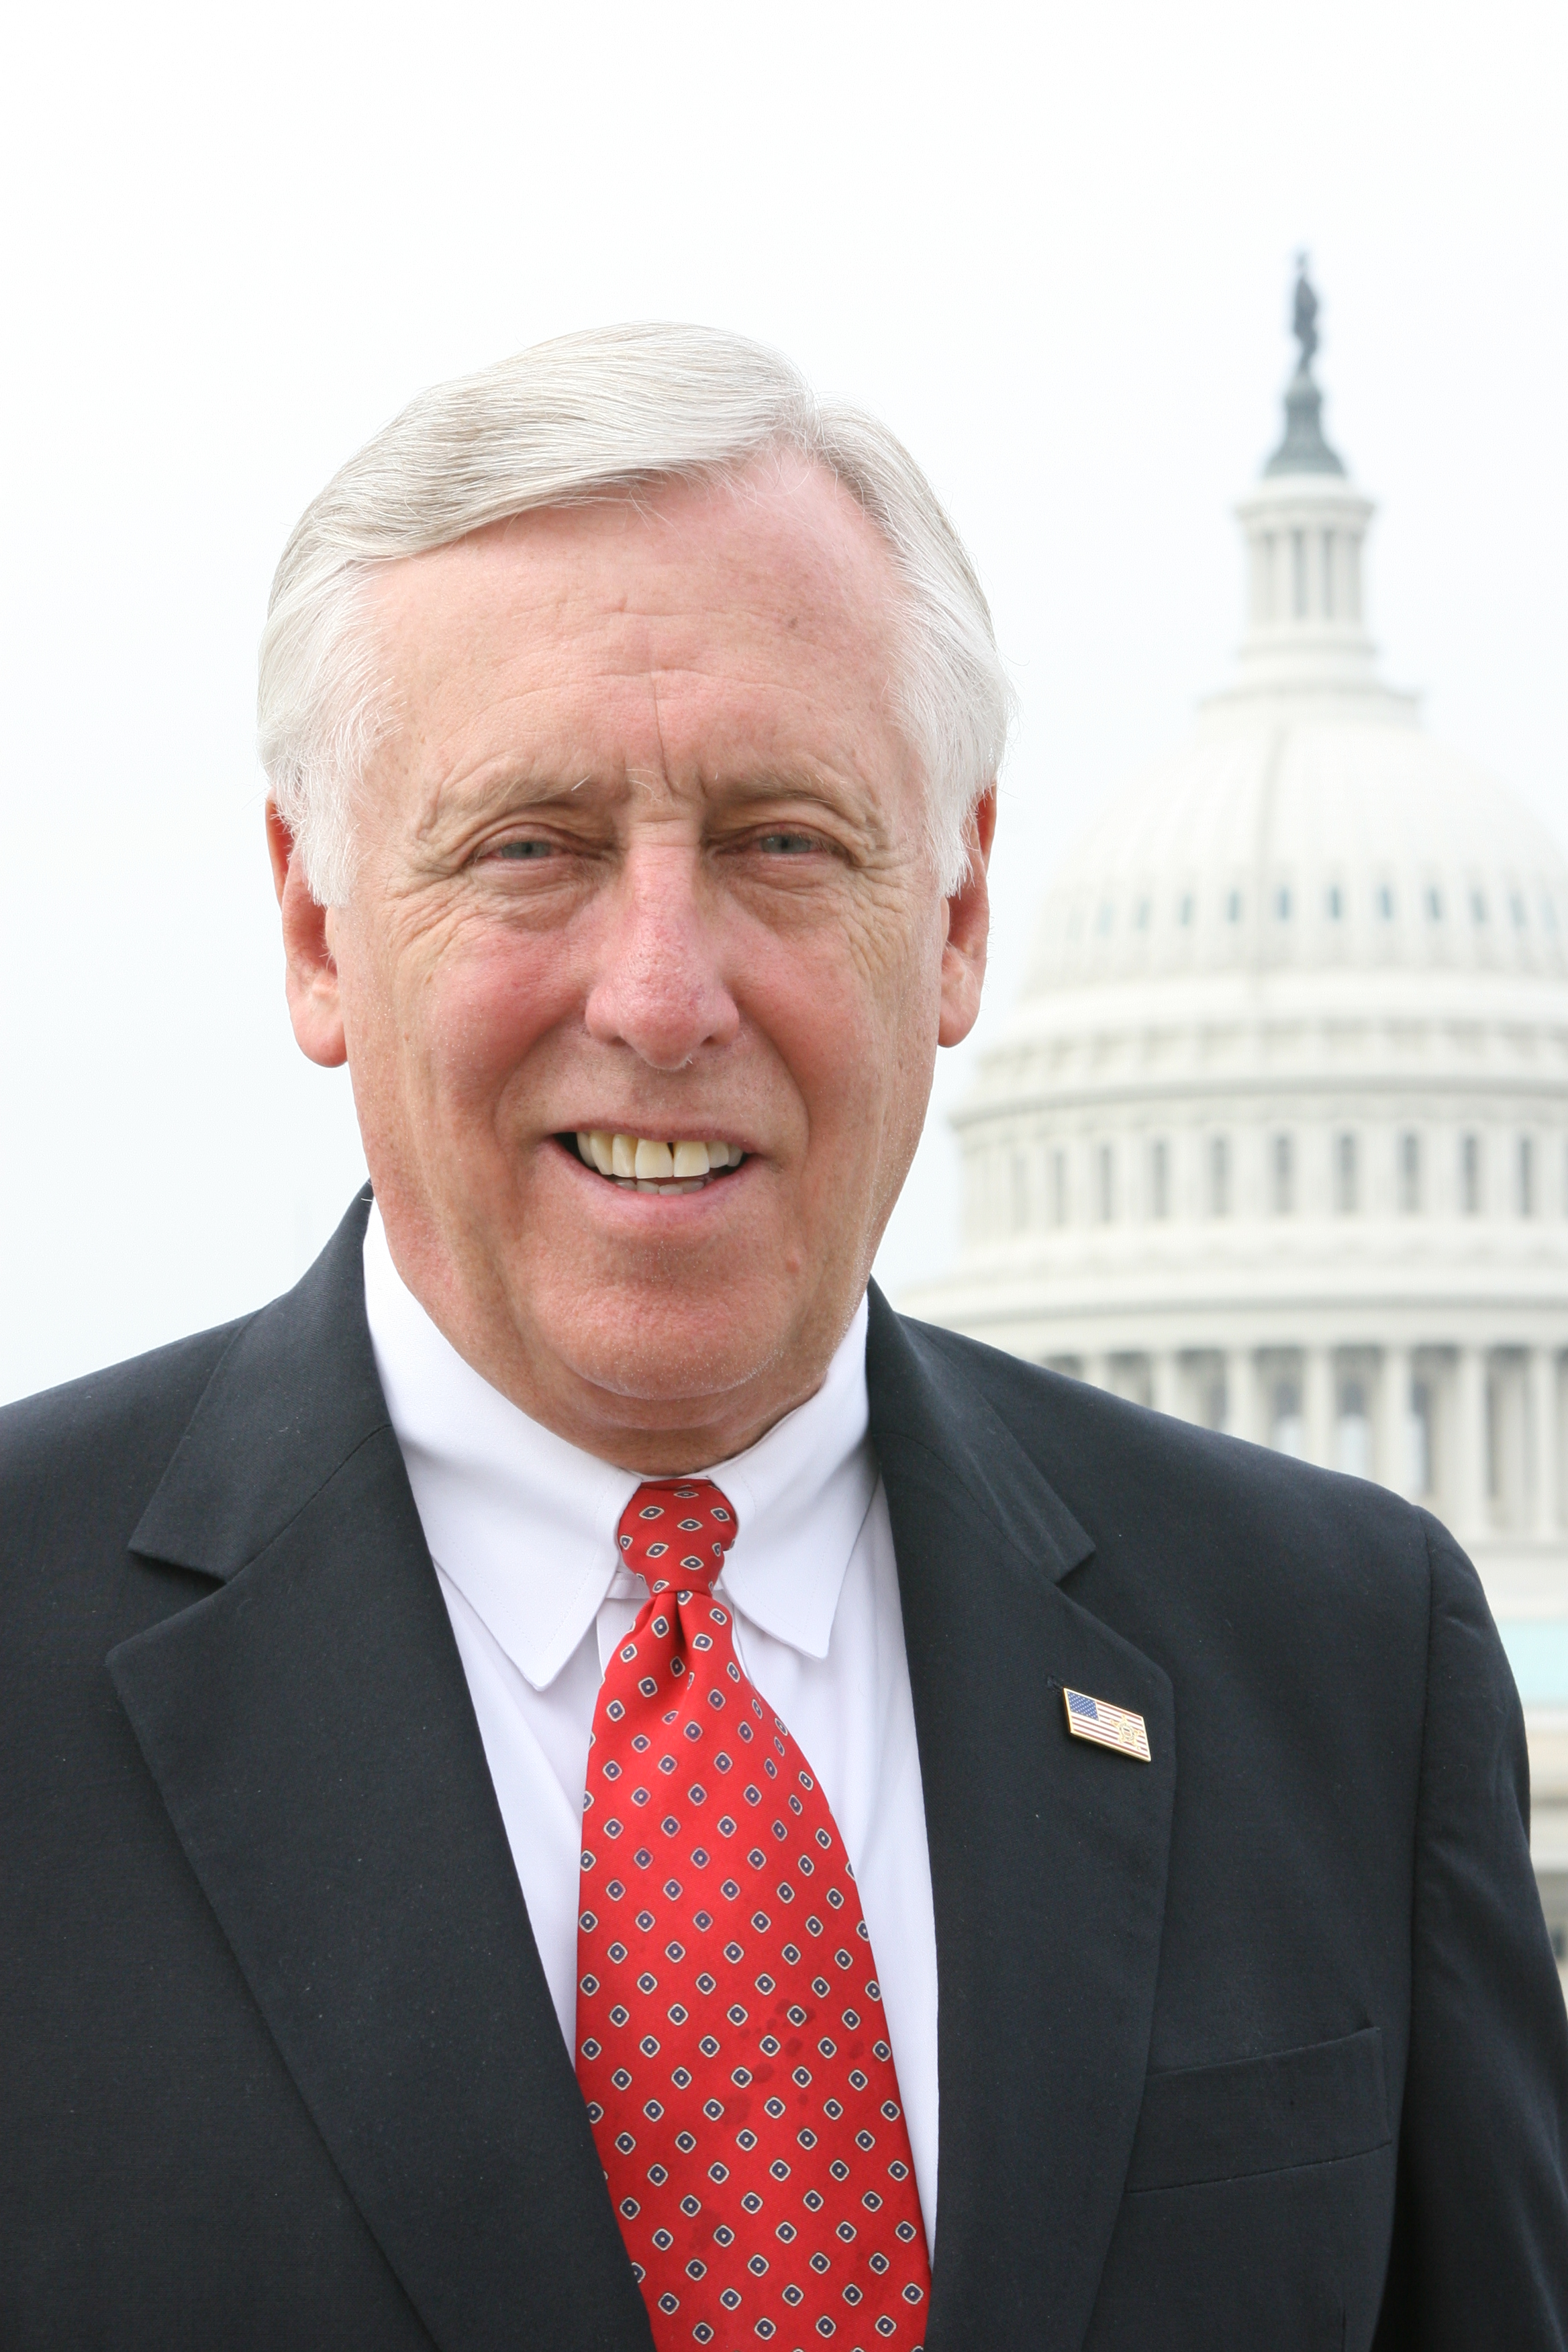 Photo of Steny Hoyer in front of the Capitol building